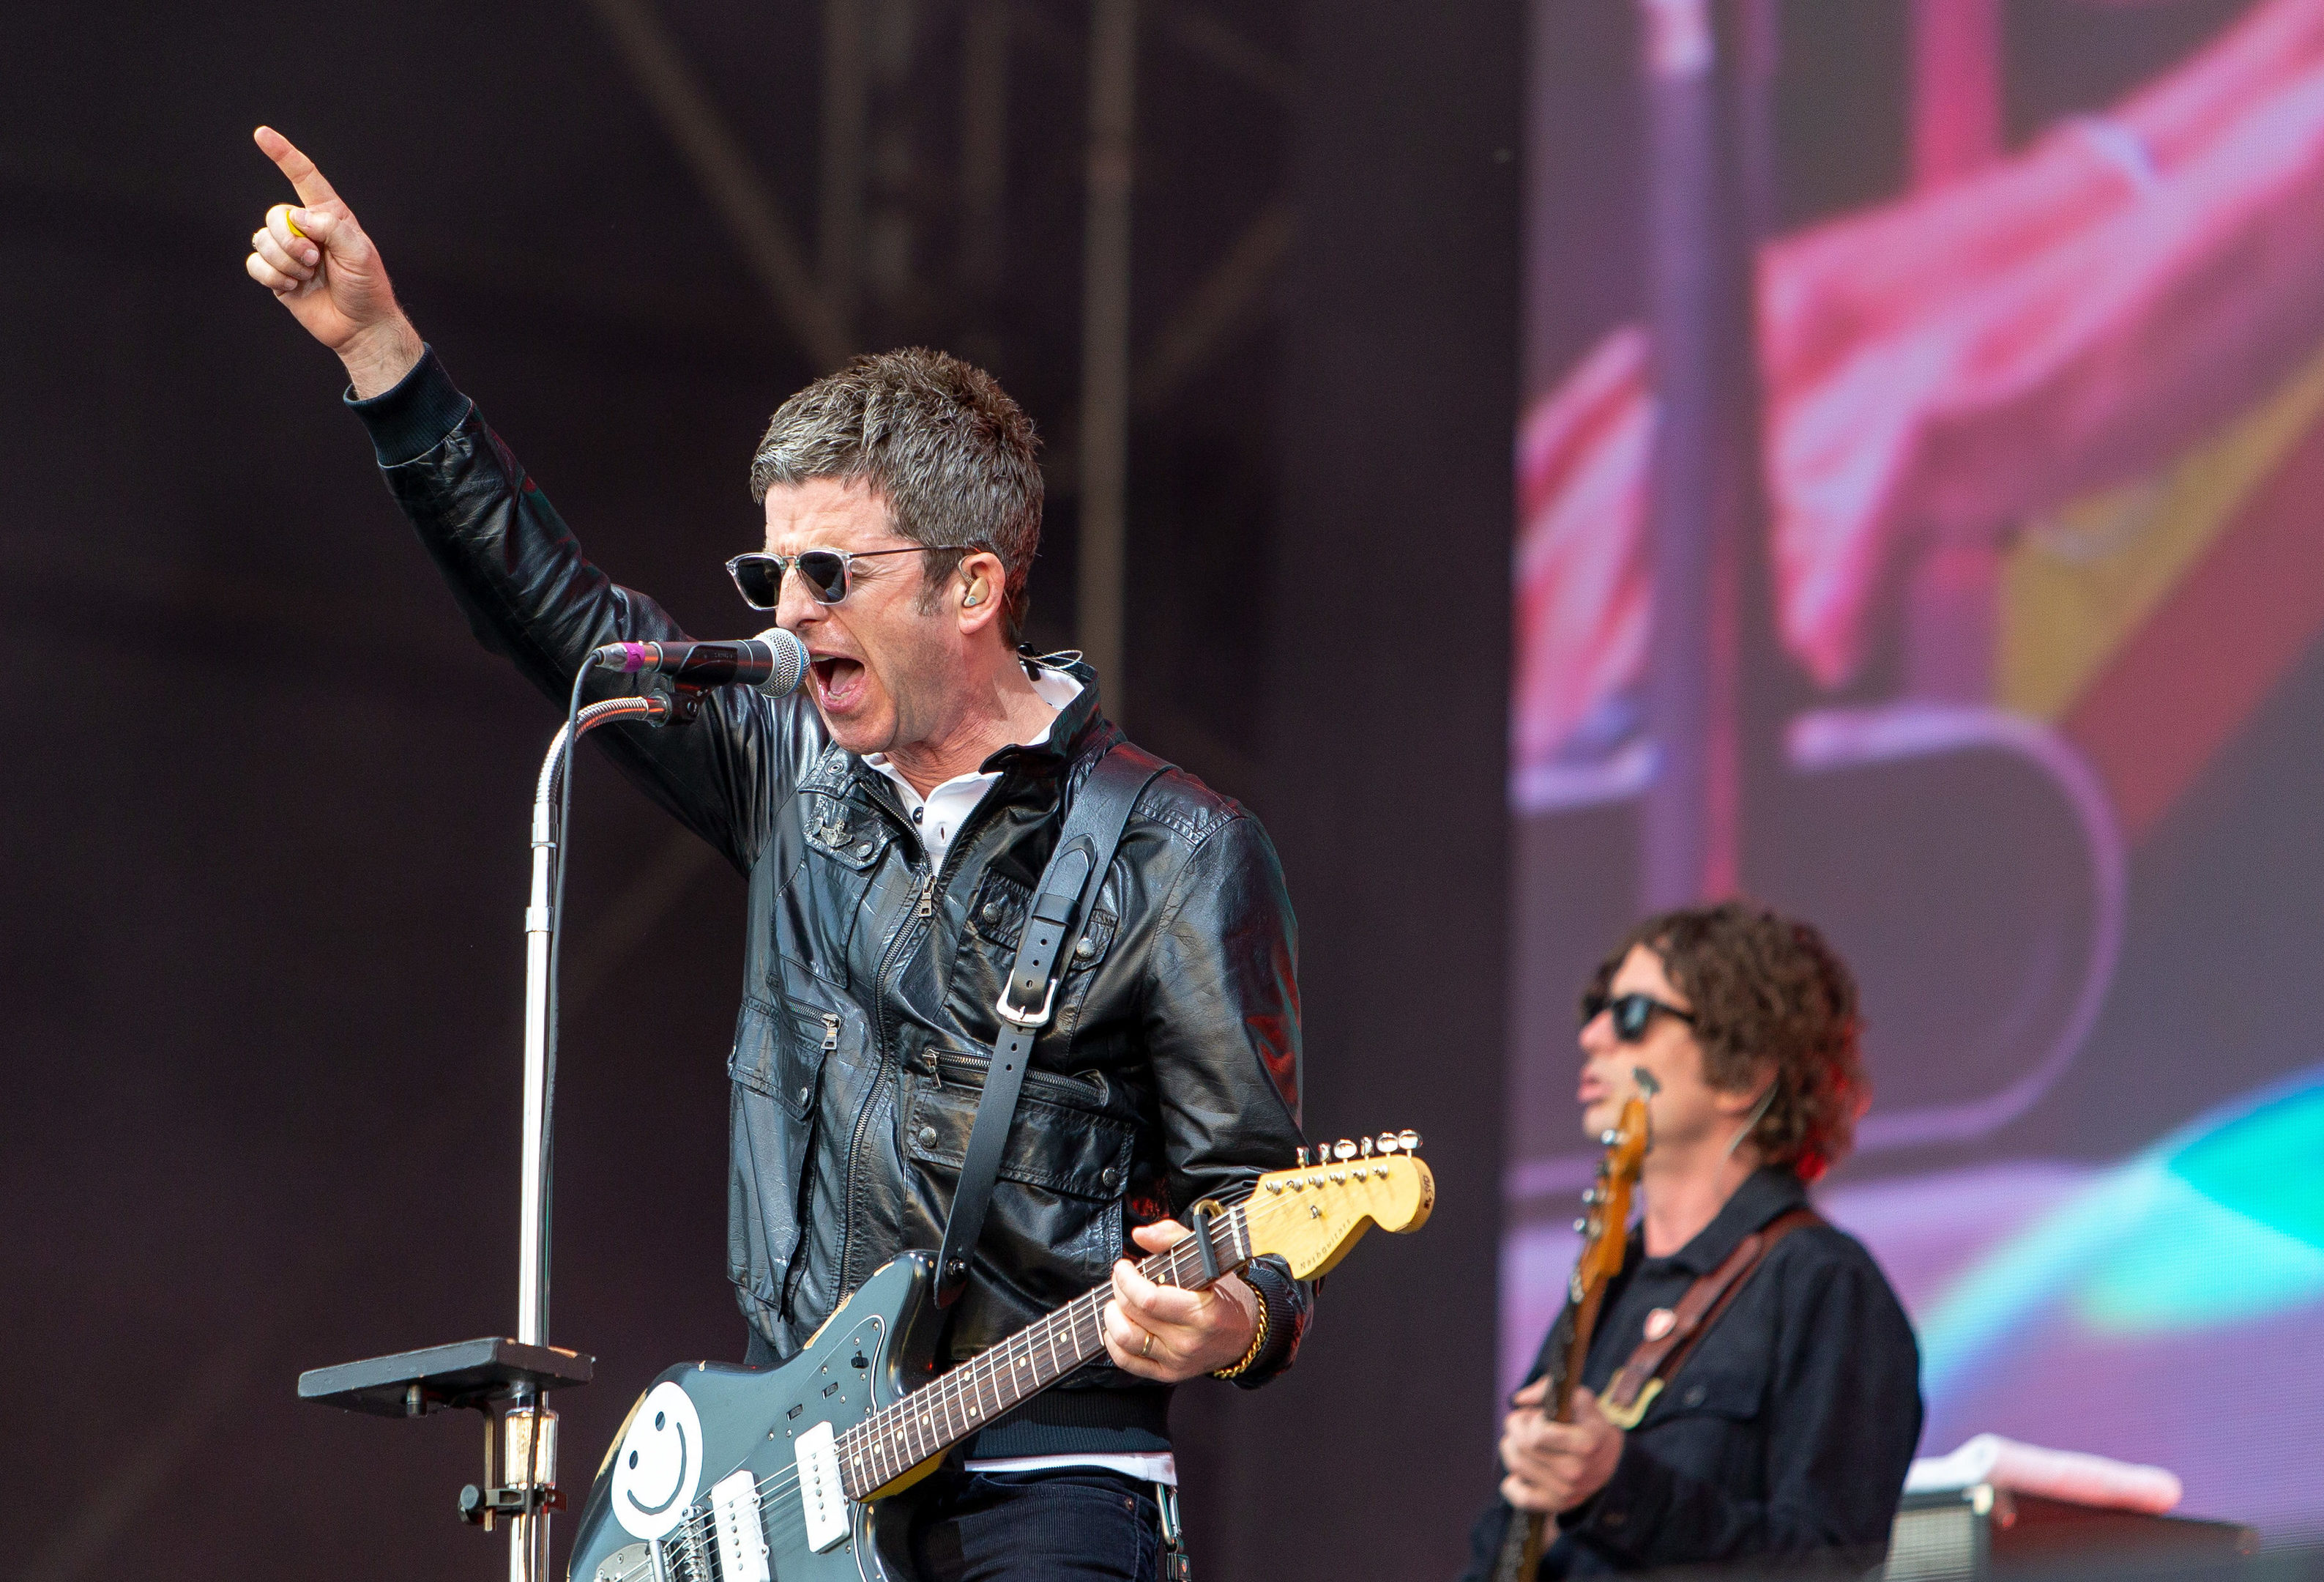 Noel Gallagher at Scone Palace in May 2018